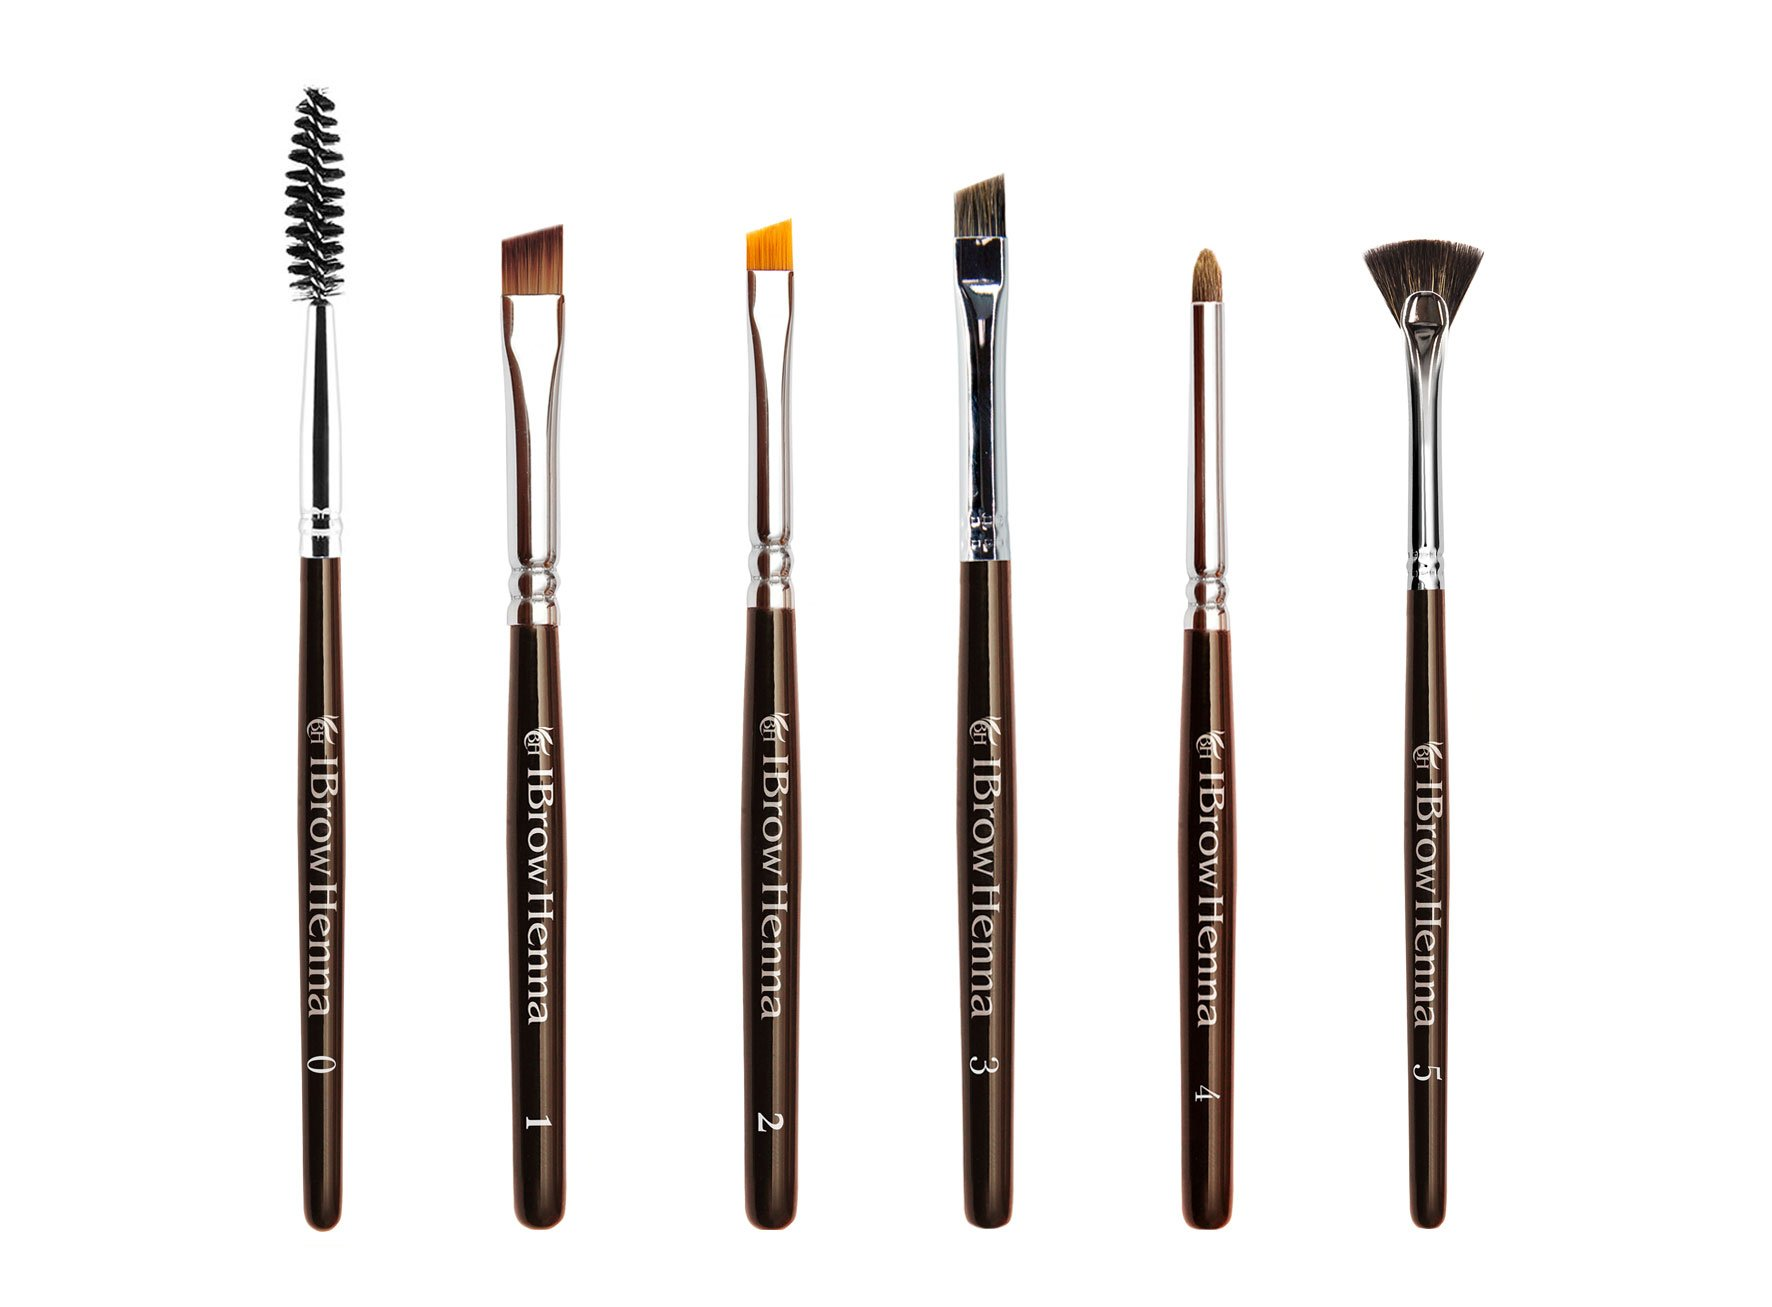 PINCEL - Brow Xenna - Brow Xenna Products dluxpro